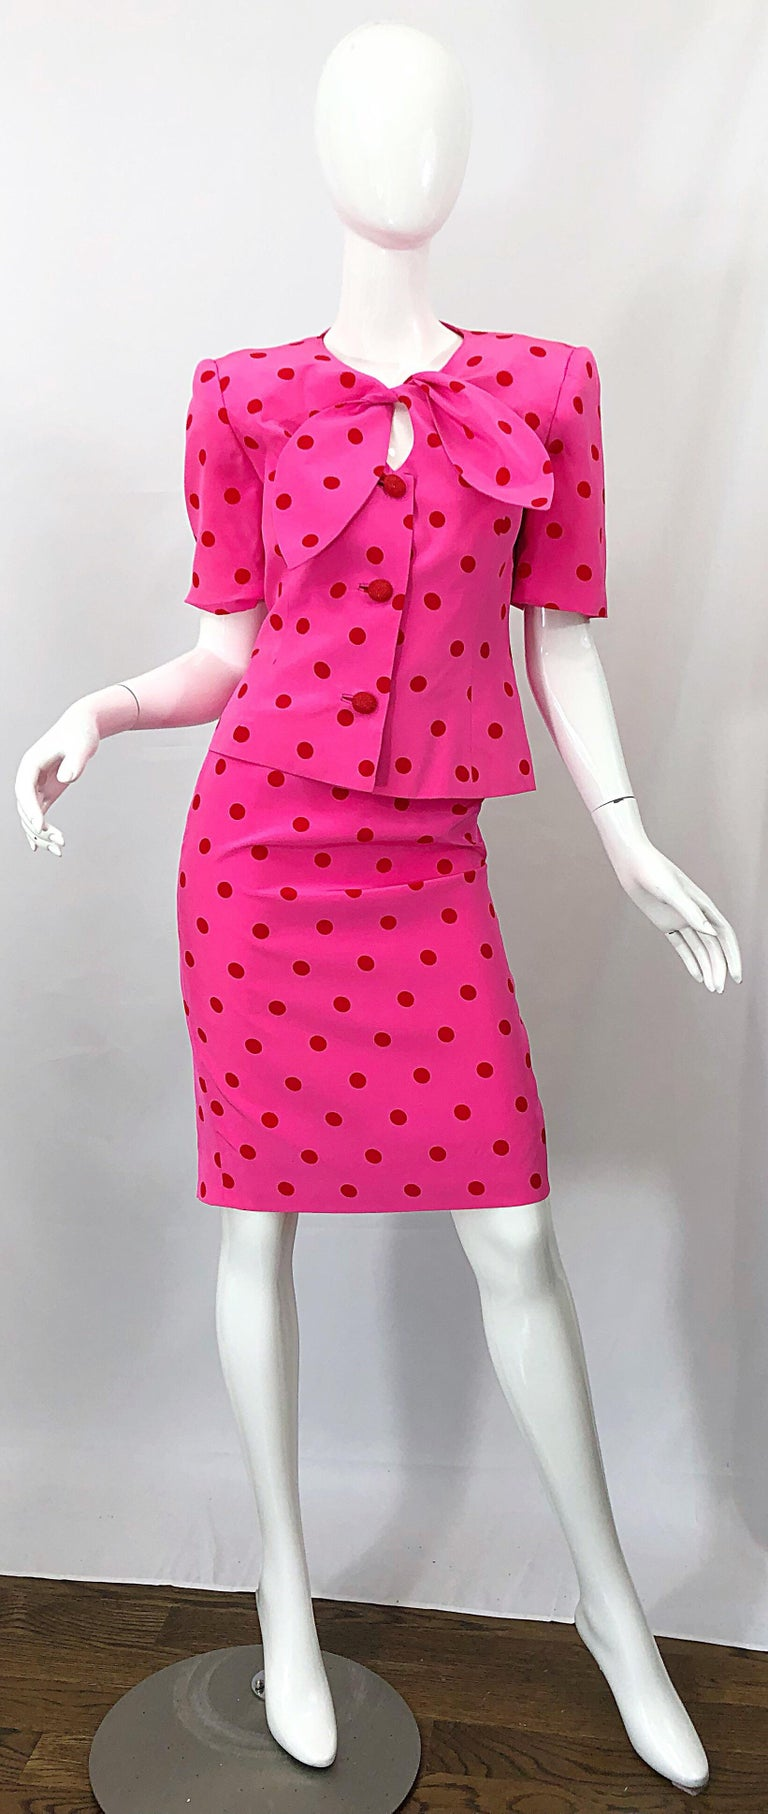 Chic vintage 90s DAVID HAYES for SAKS 5th AVENUE hot pink and red polka dot silk power skirt suit! Features a tailored short sleeve jacket with a tie at neck with keyhole below. Three red crystal embellished buttons up the front center. High waisted